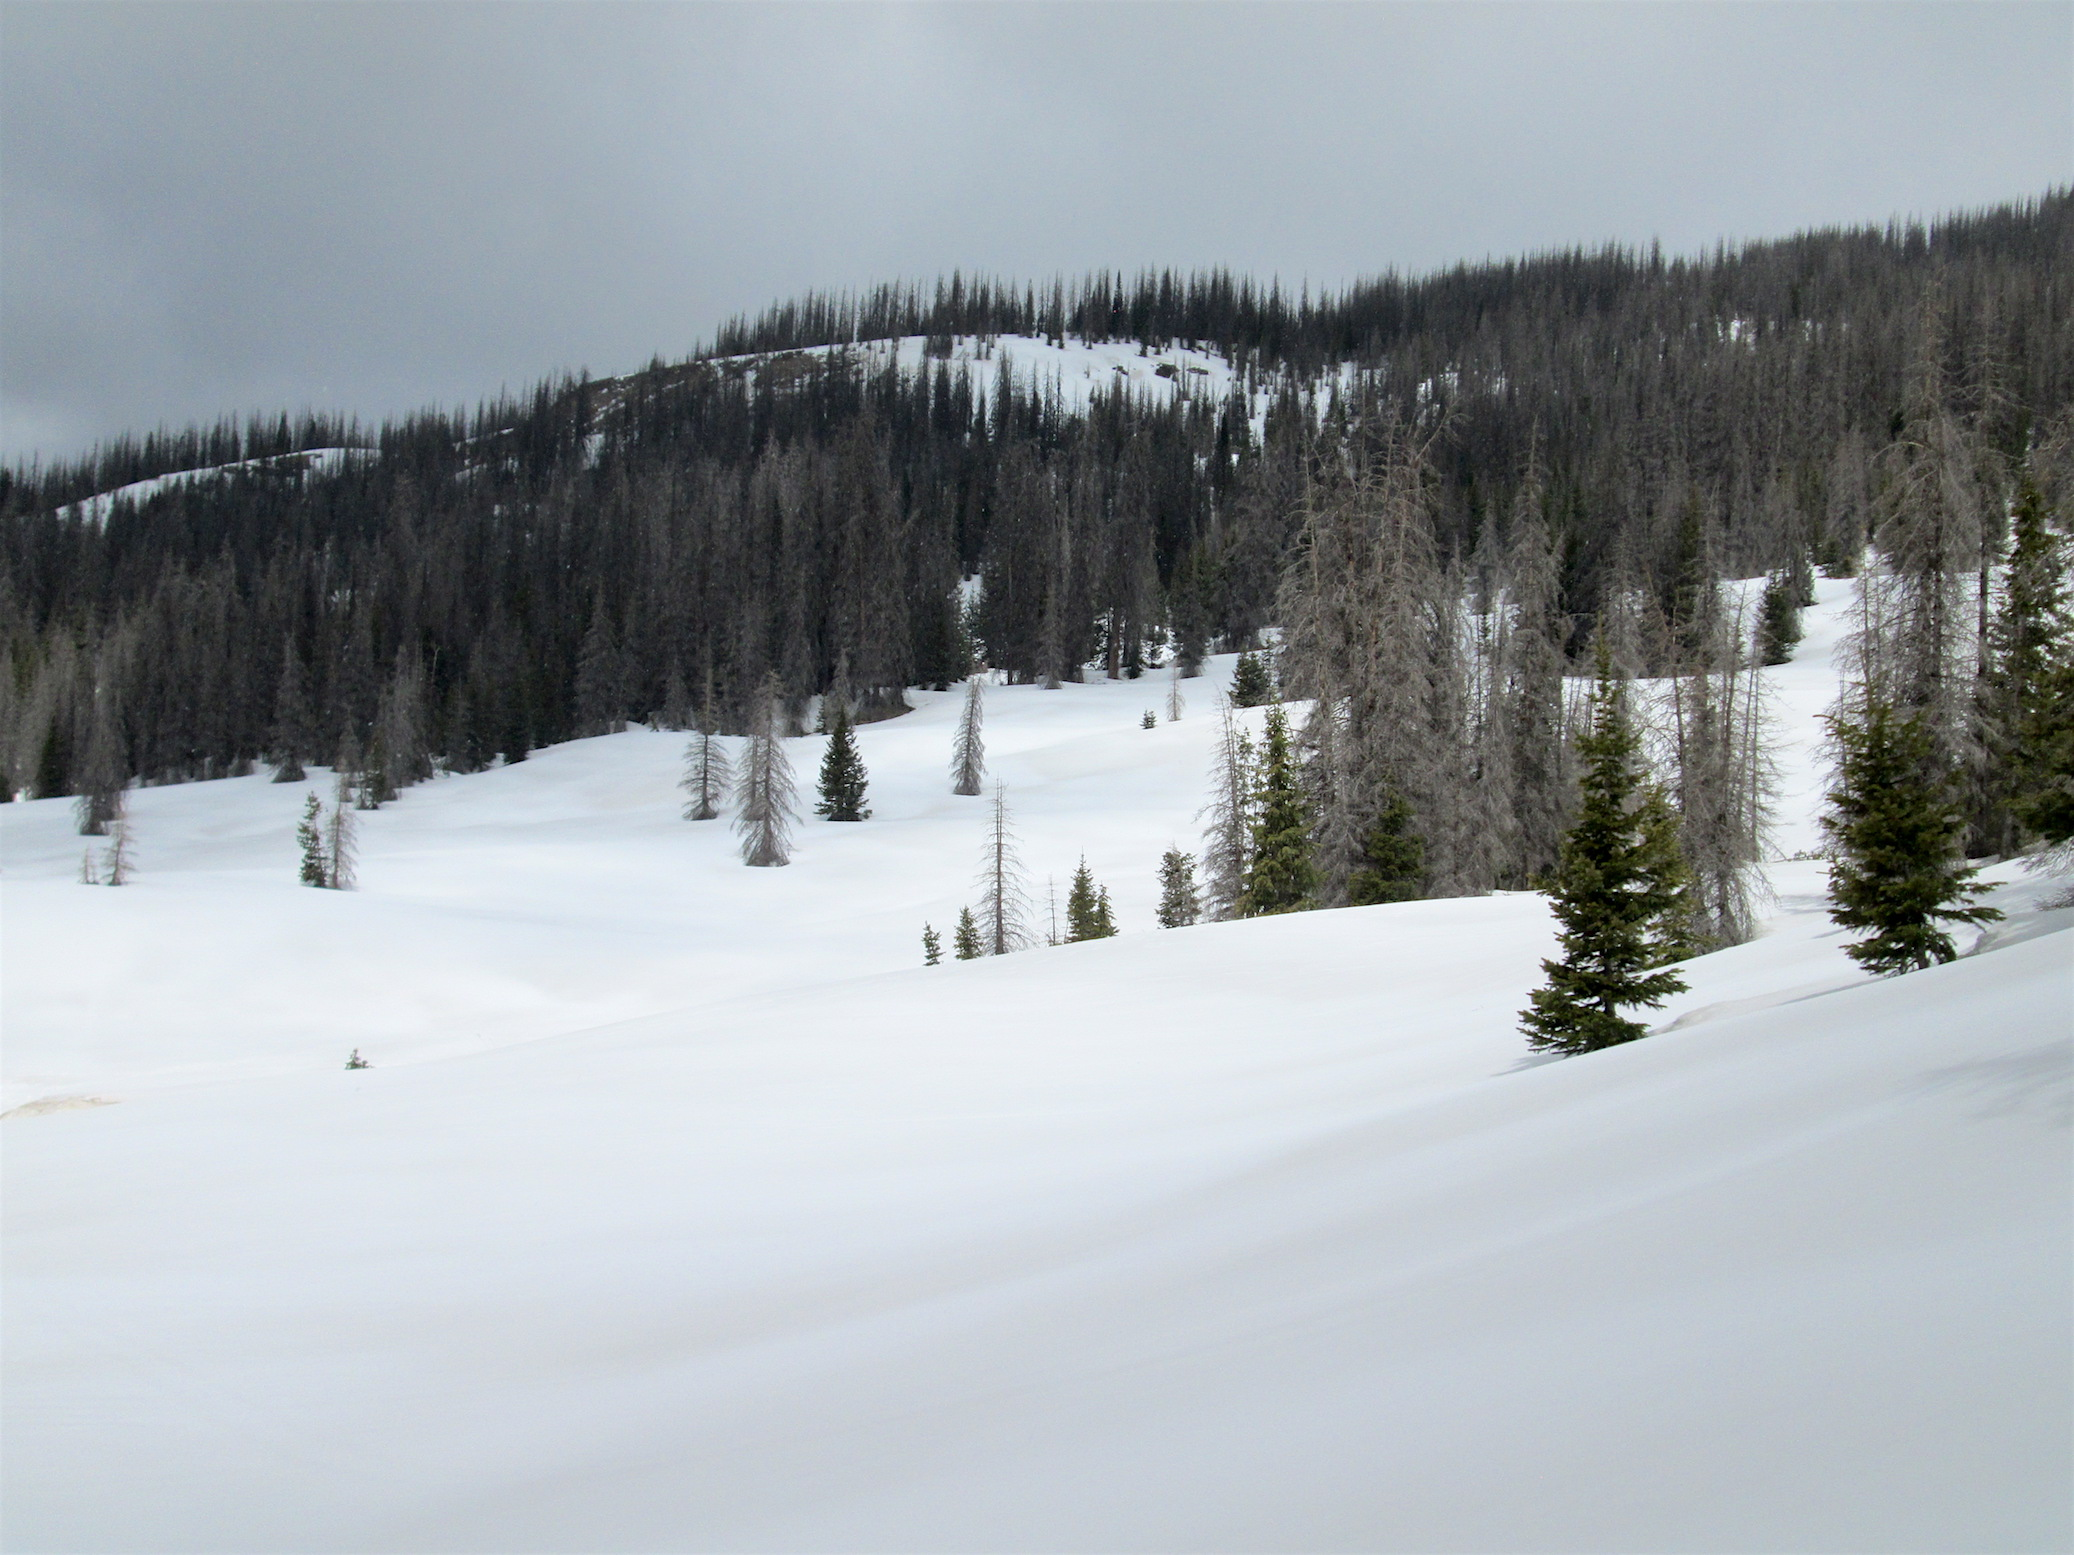 Wolf Creek Pass environs on May 10, 2016.  D5/D6 dust events are visible beneath the scant new snow accumulation.  Following the taking of this photo, sunny warm weather ensued for 4 days, likely causing dust emergence in this locale to occur quickly.  Currently, the forecast over the next five days calls for chance of rain and snow, thereby reducing incoming solar radiation and possibly adding fresh snow on the near-exposed, or exposed dust.